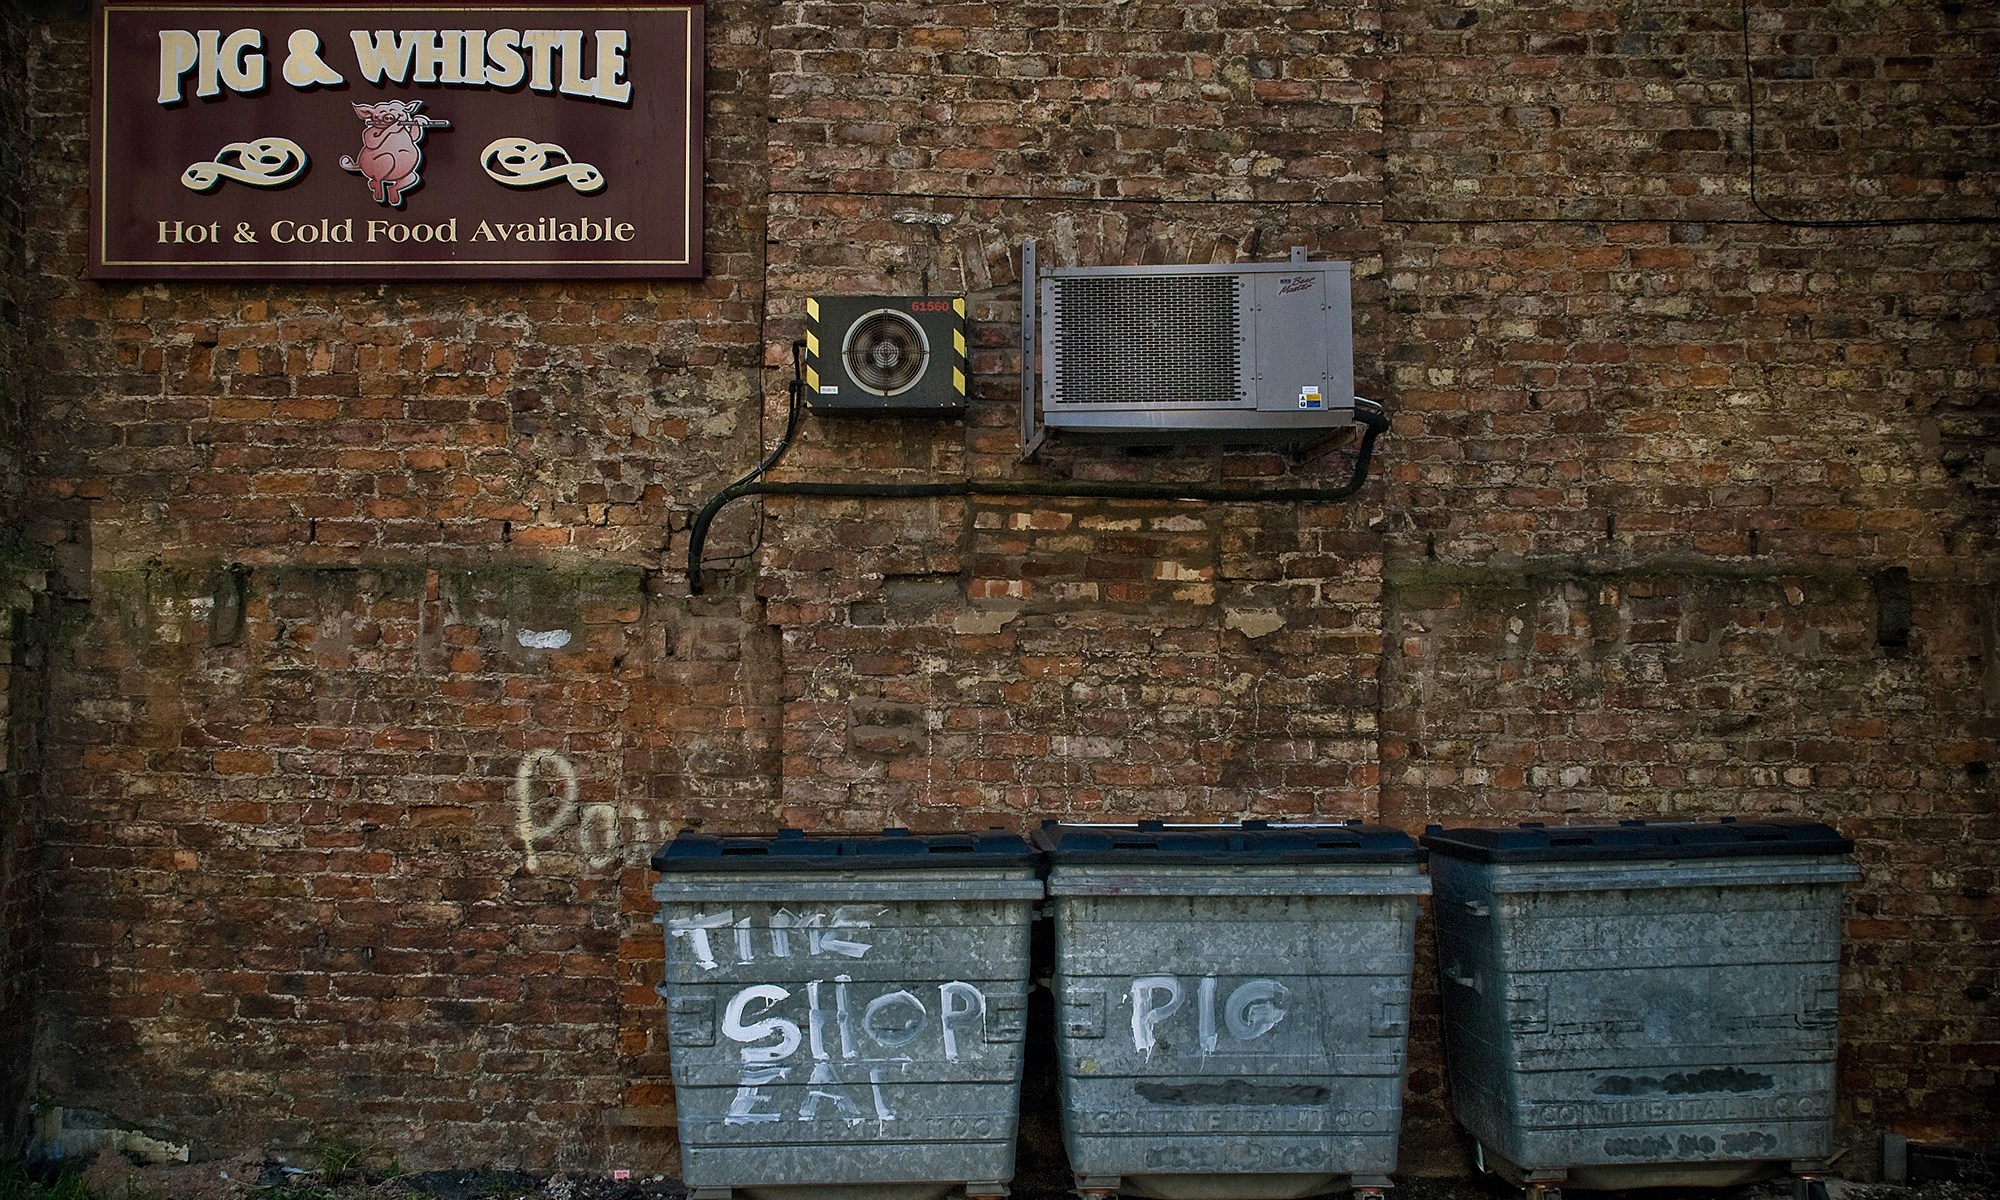 Behind the Pig & Whistle Pub, Liverpool